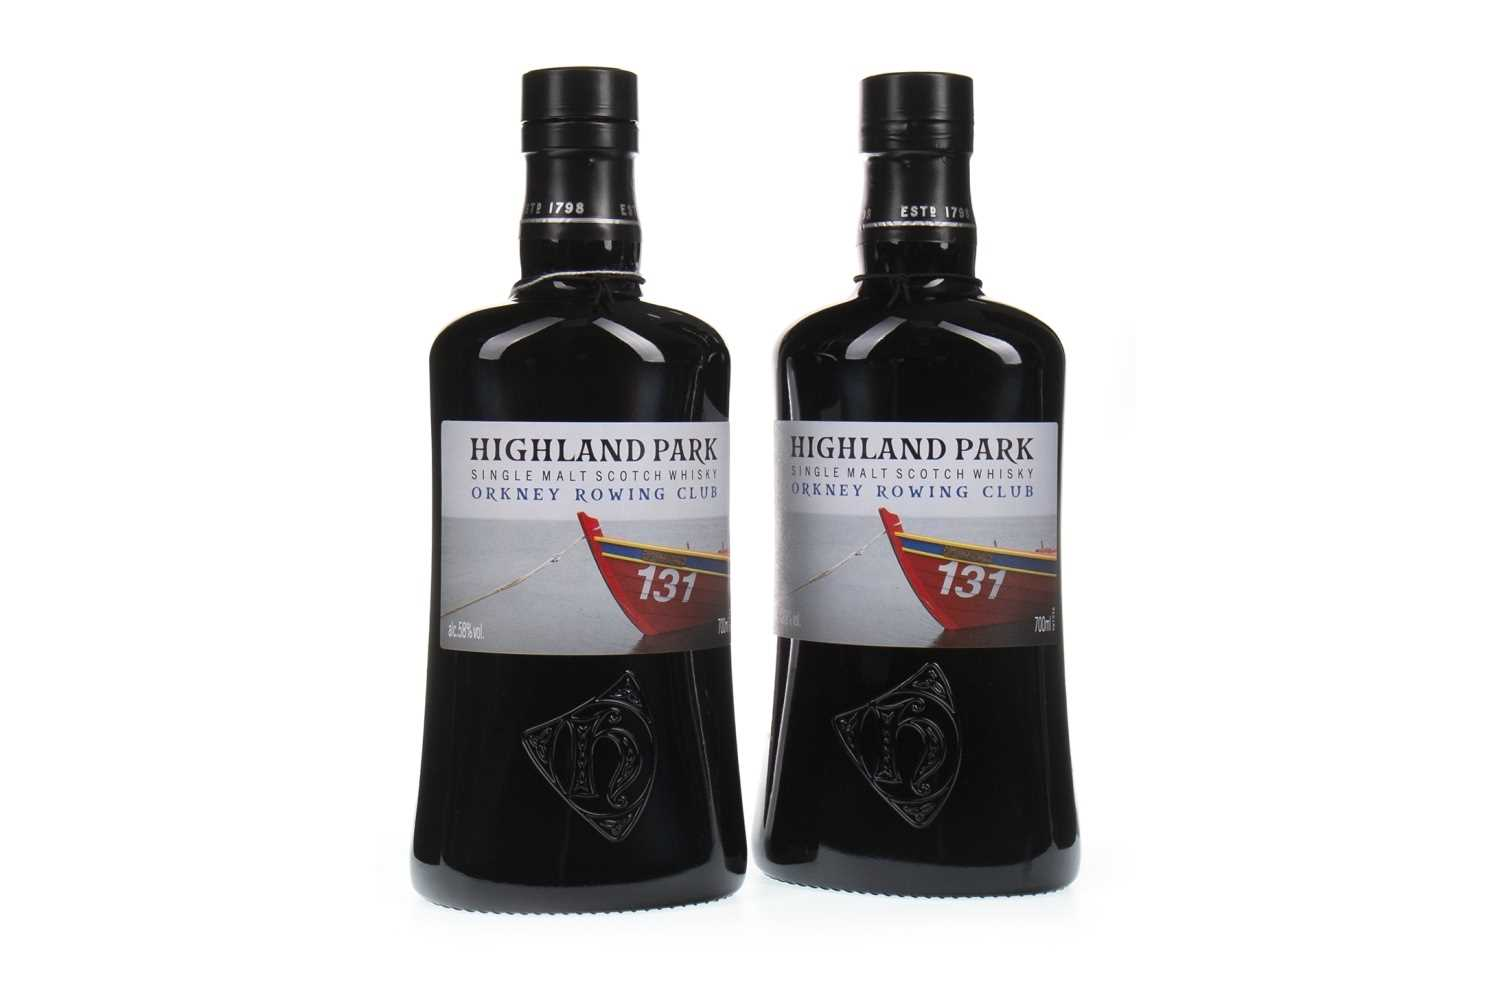 Lot 316-TWO BOTTLES OF HIGHLAND PARK ORKNEY ROWING CLUB